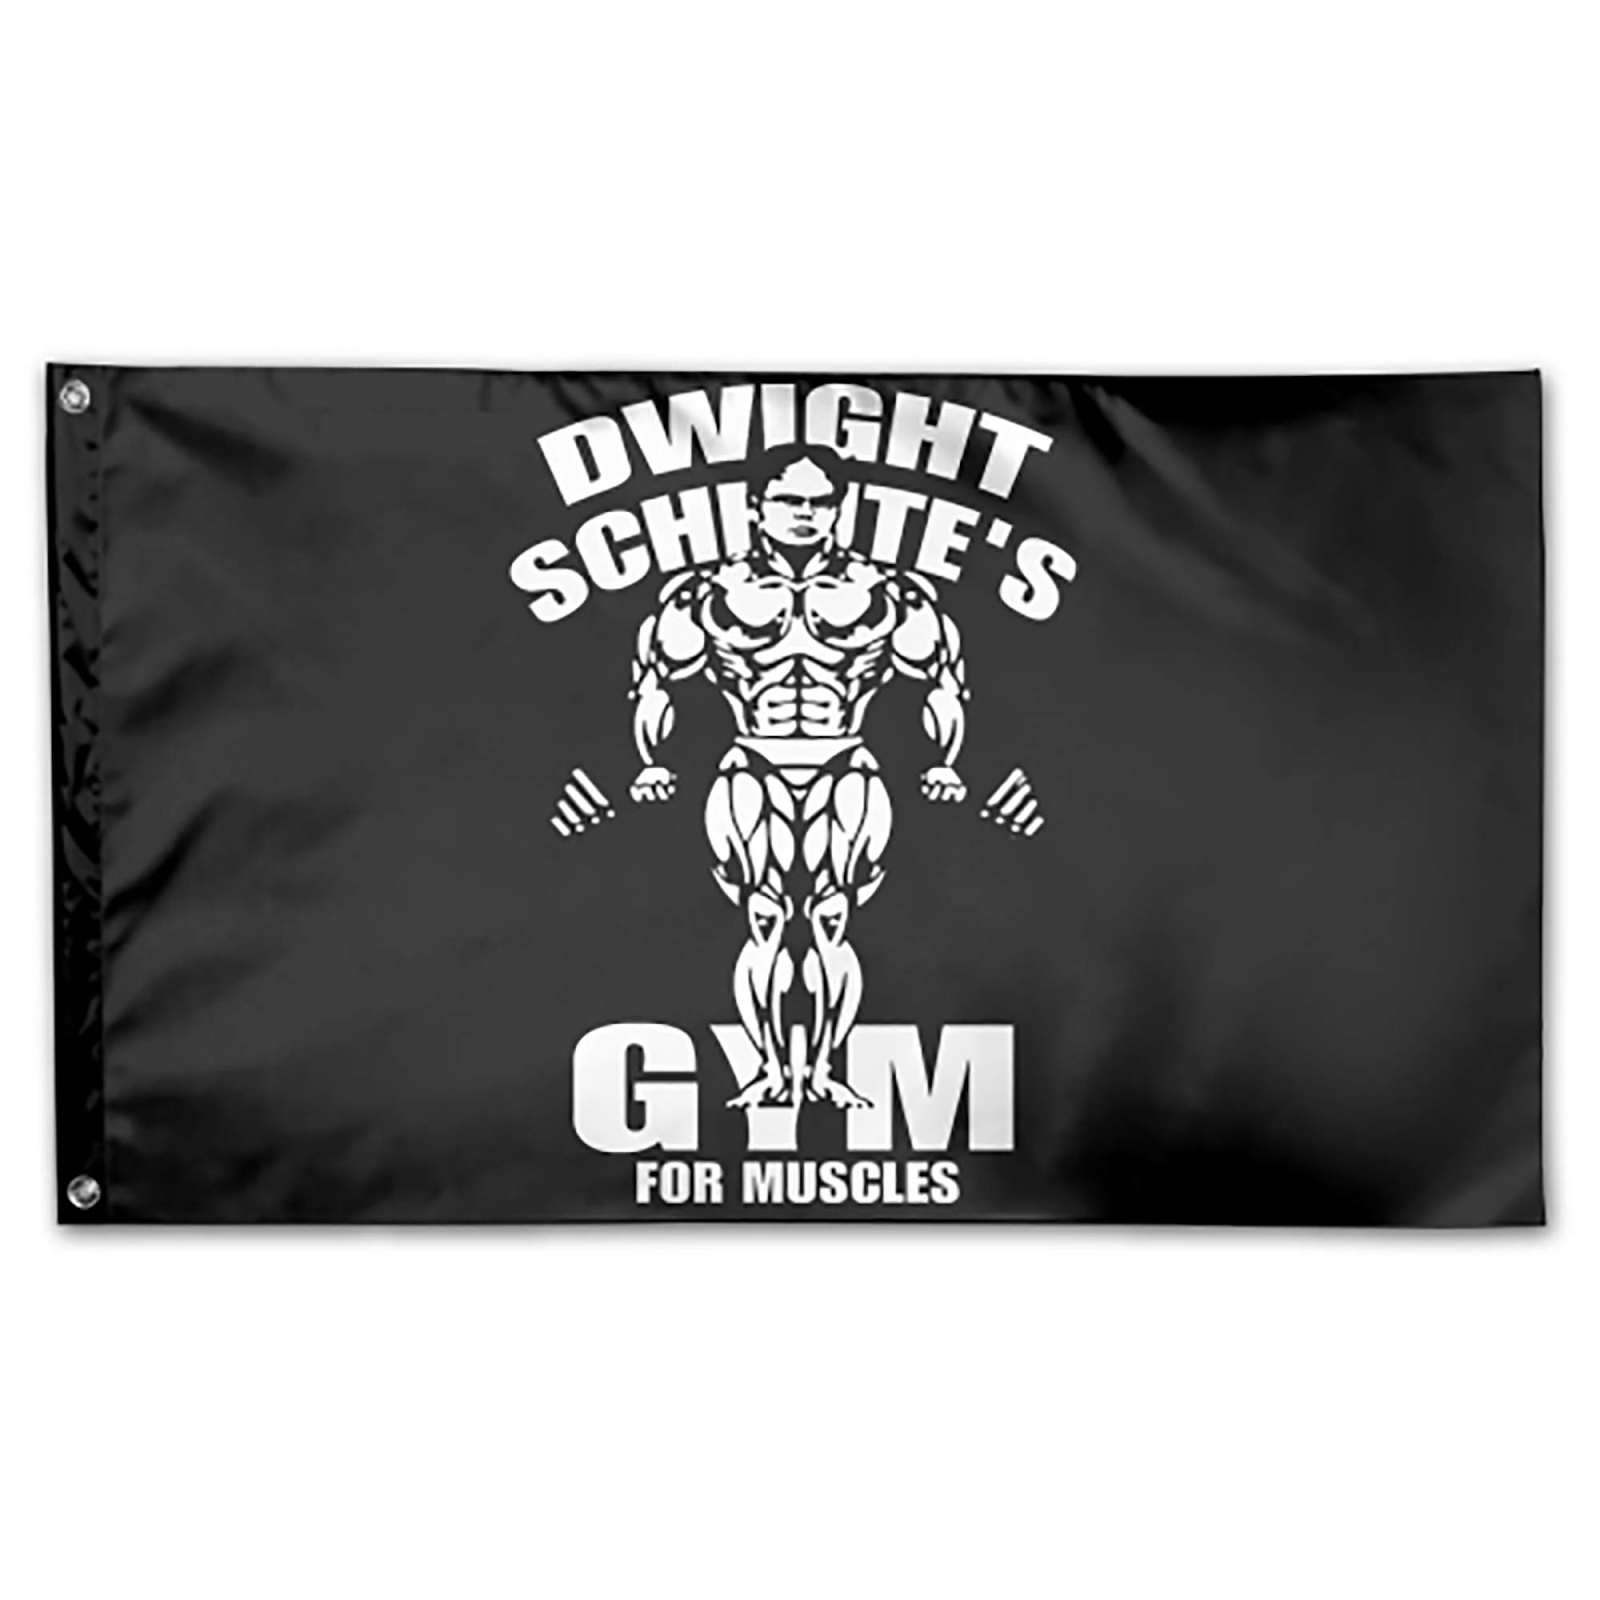 Dwight Schrute Gym for Muscles flag which available in various color schemes and can also be use as a banner